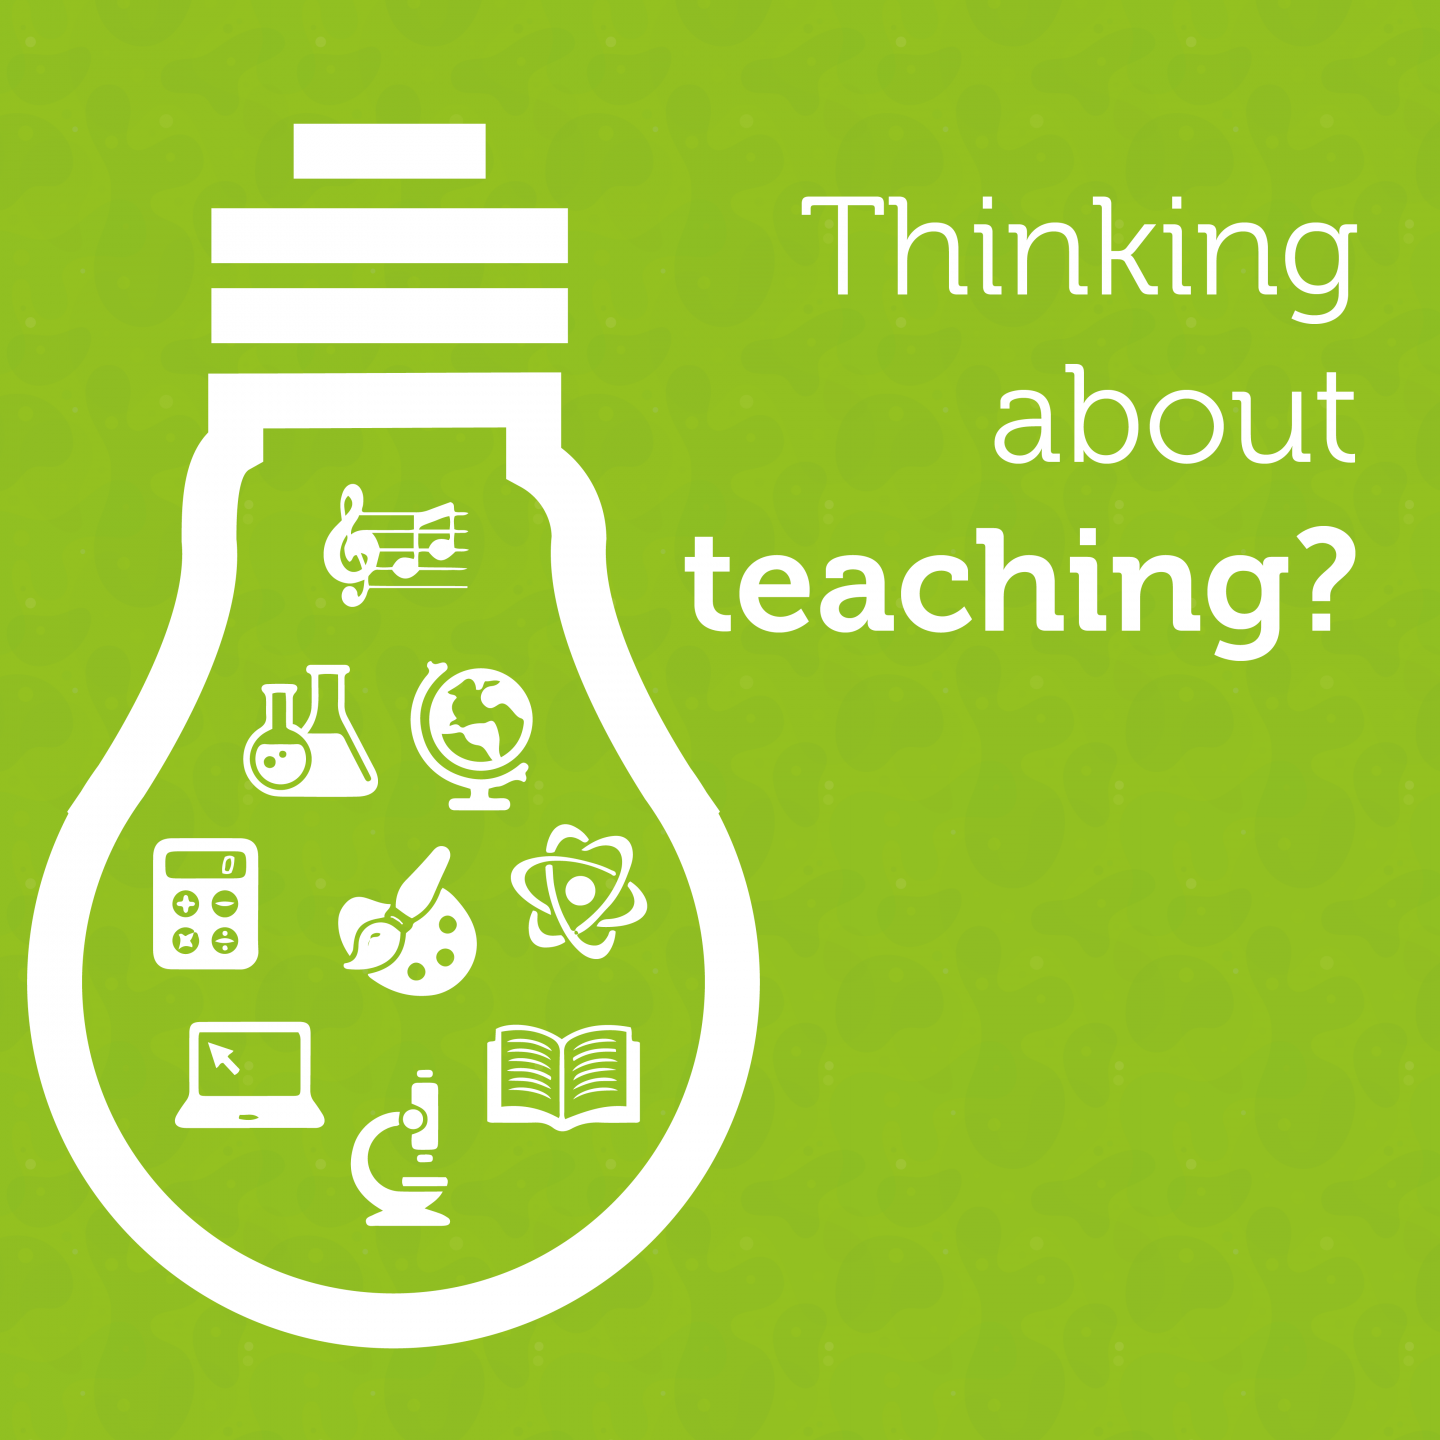 Thinking about teaching - SQ-01